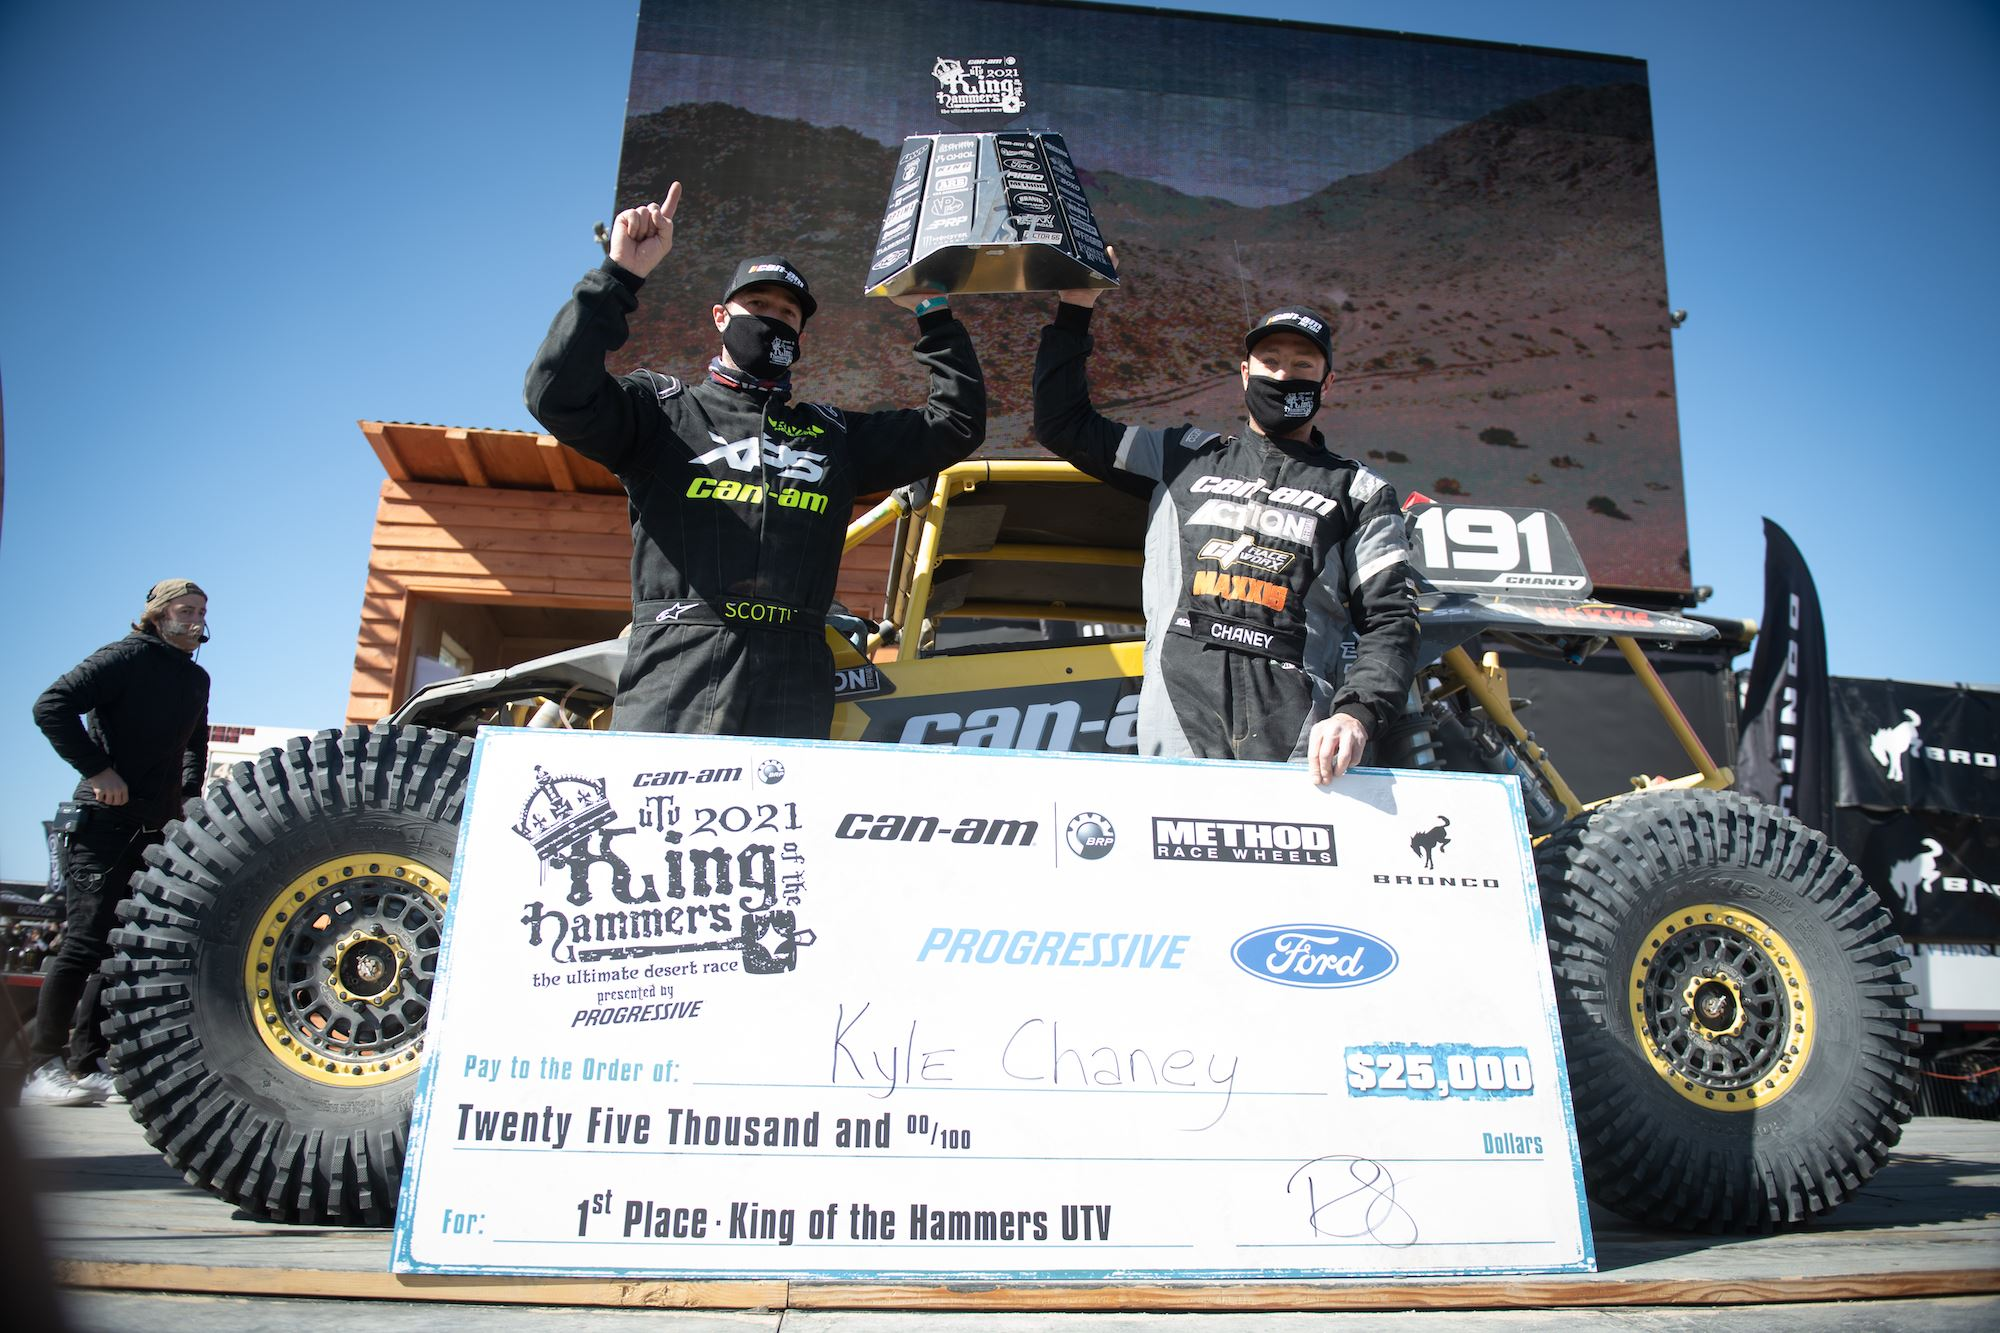 Kyle Chaney won the 2021 Can-Am UTV King of the Hammers Presented by Progressive